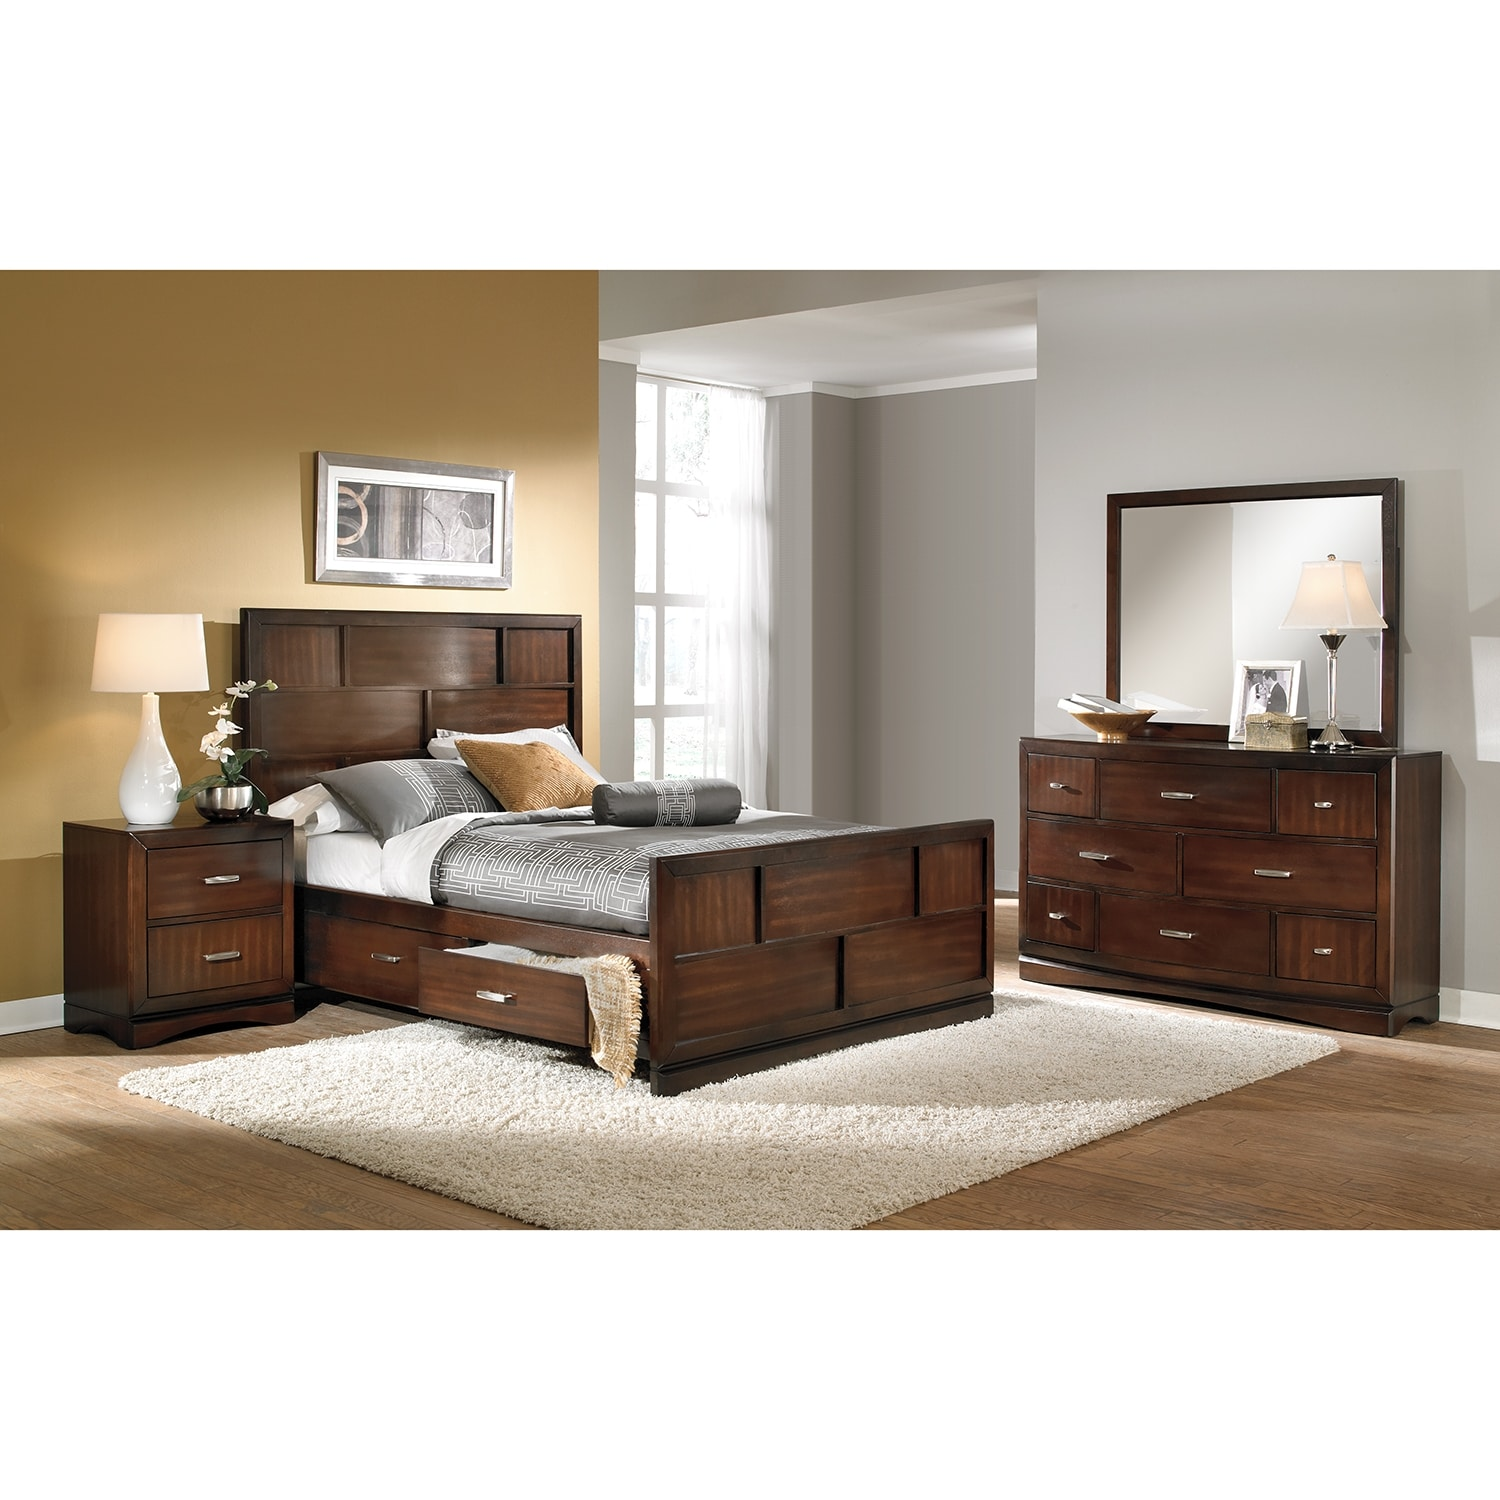 Shop Bedroom Packages American Signature Furniture